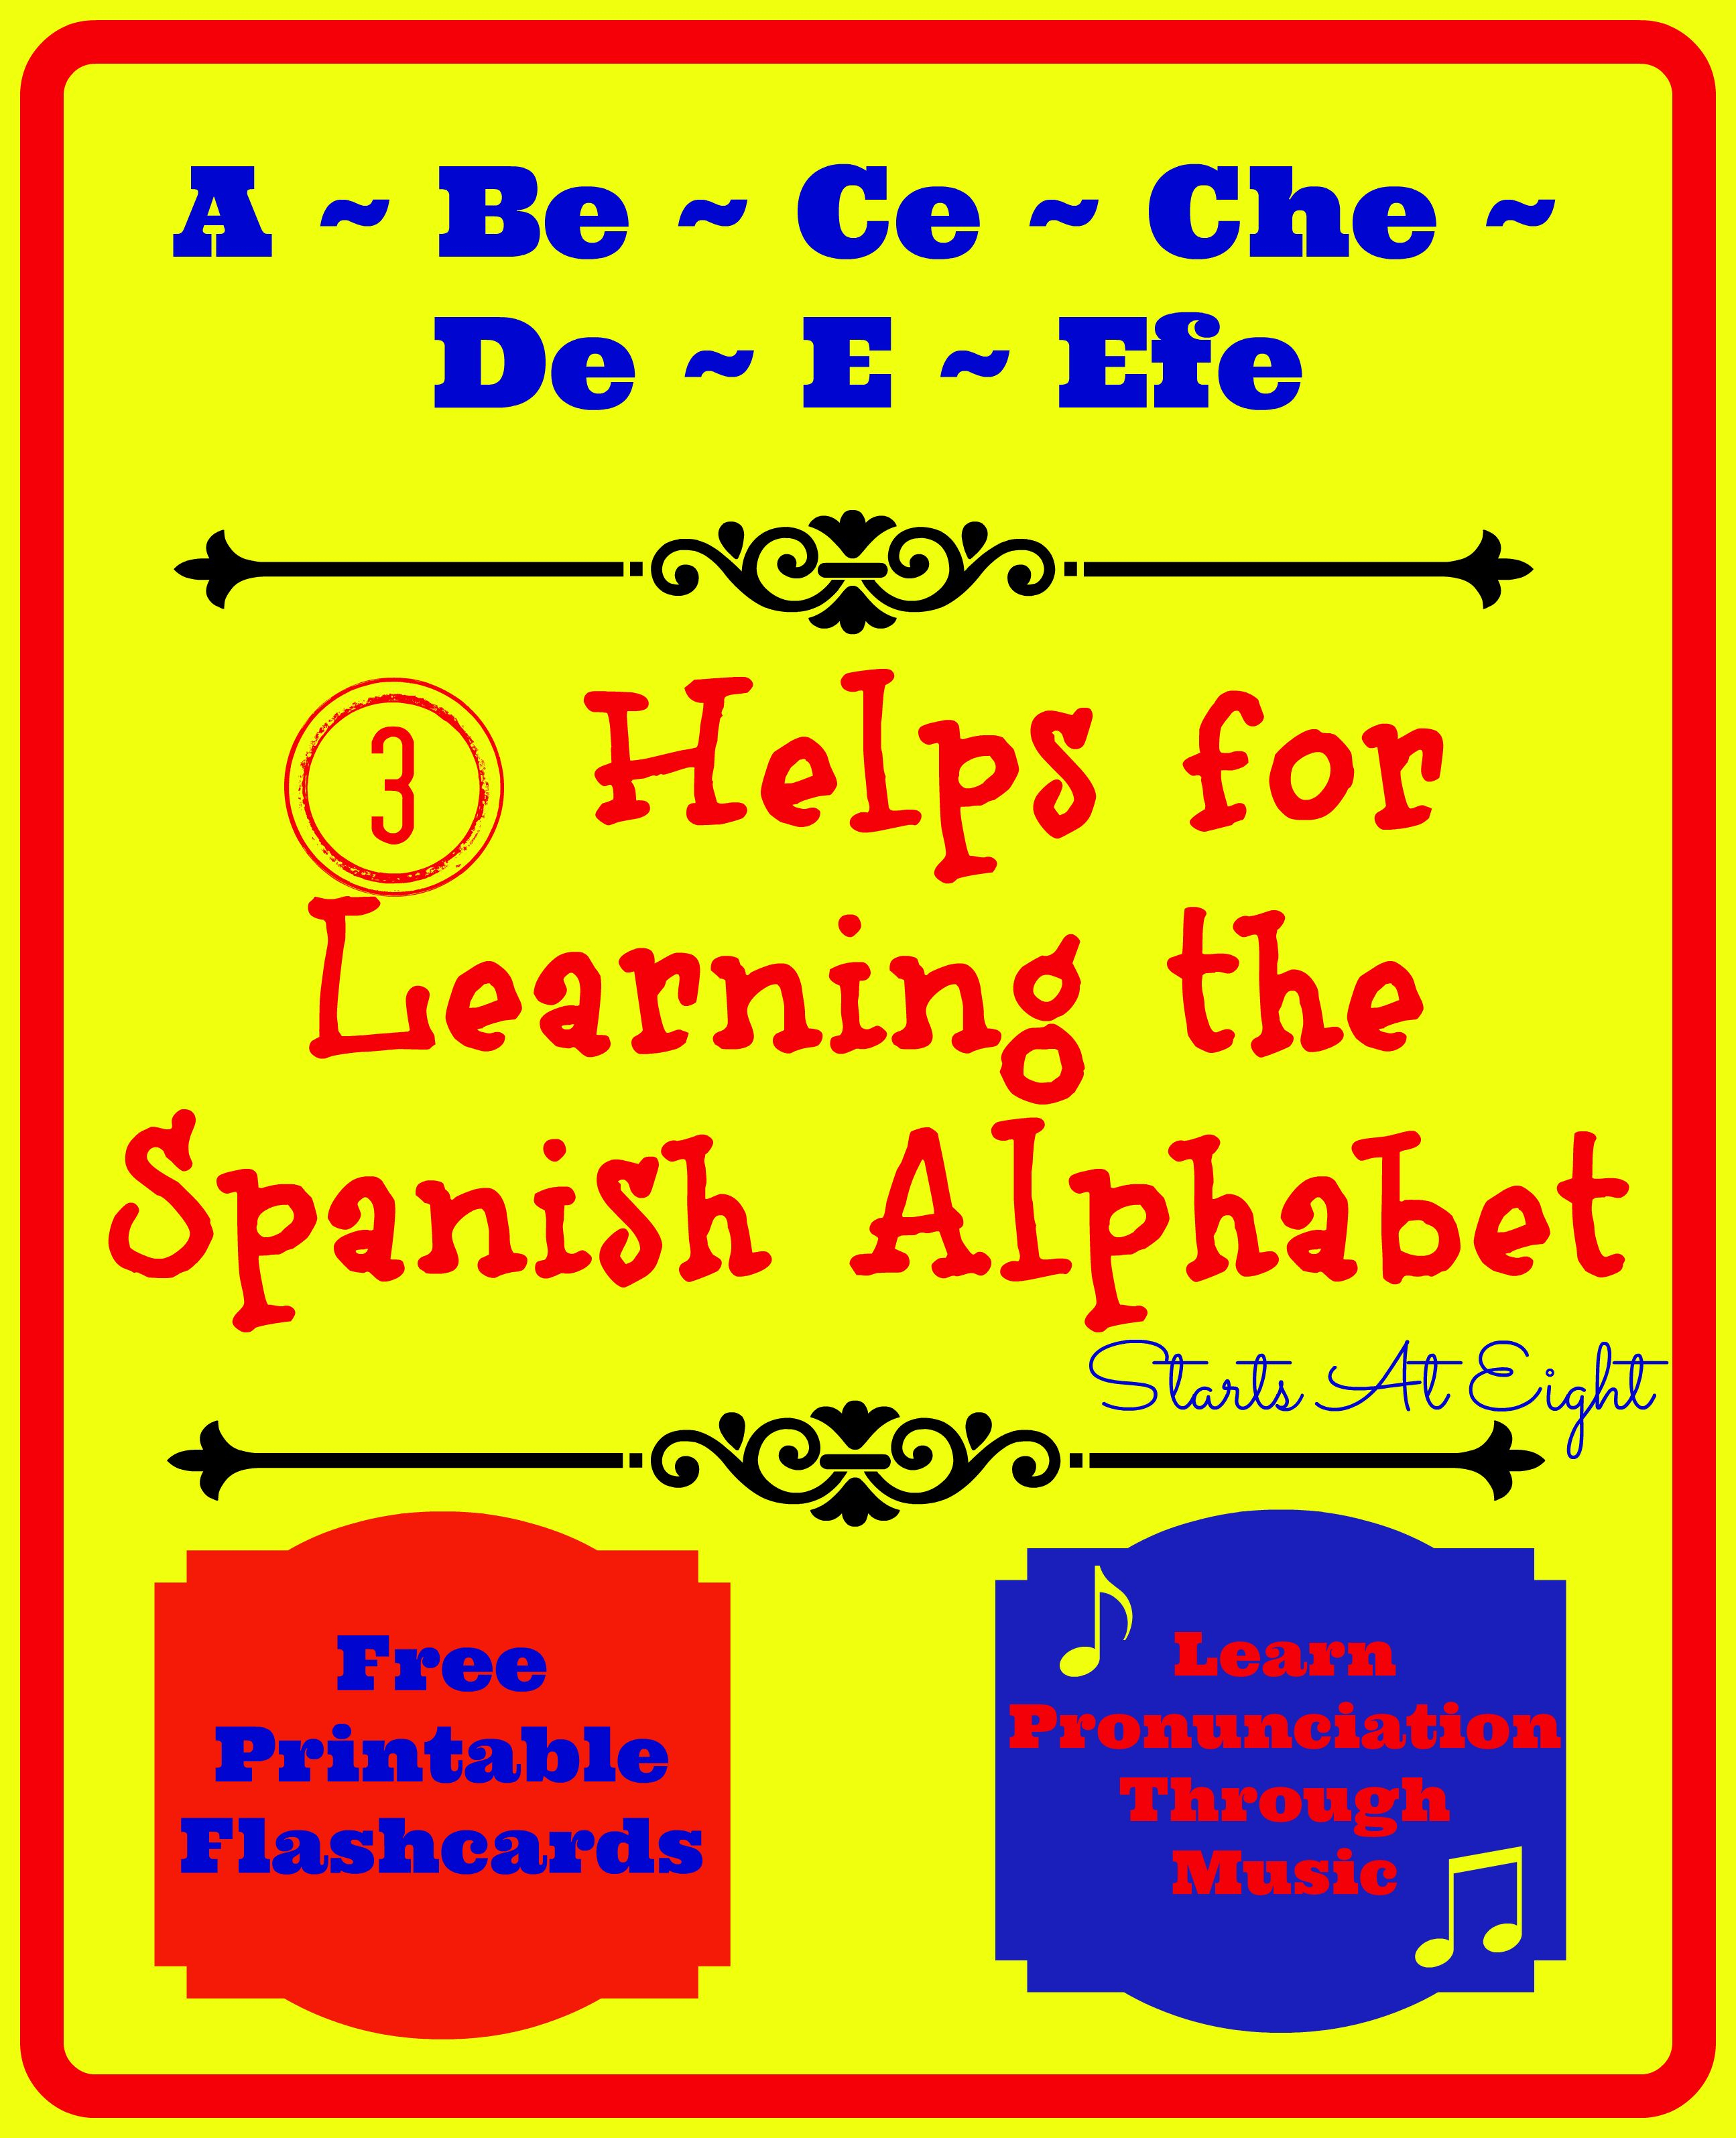 3 Helps For Learning The Spanish Alphabet | Lesson Plans | Spanish - Spanish Alphabet Flashcards Free Printable